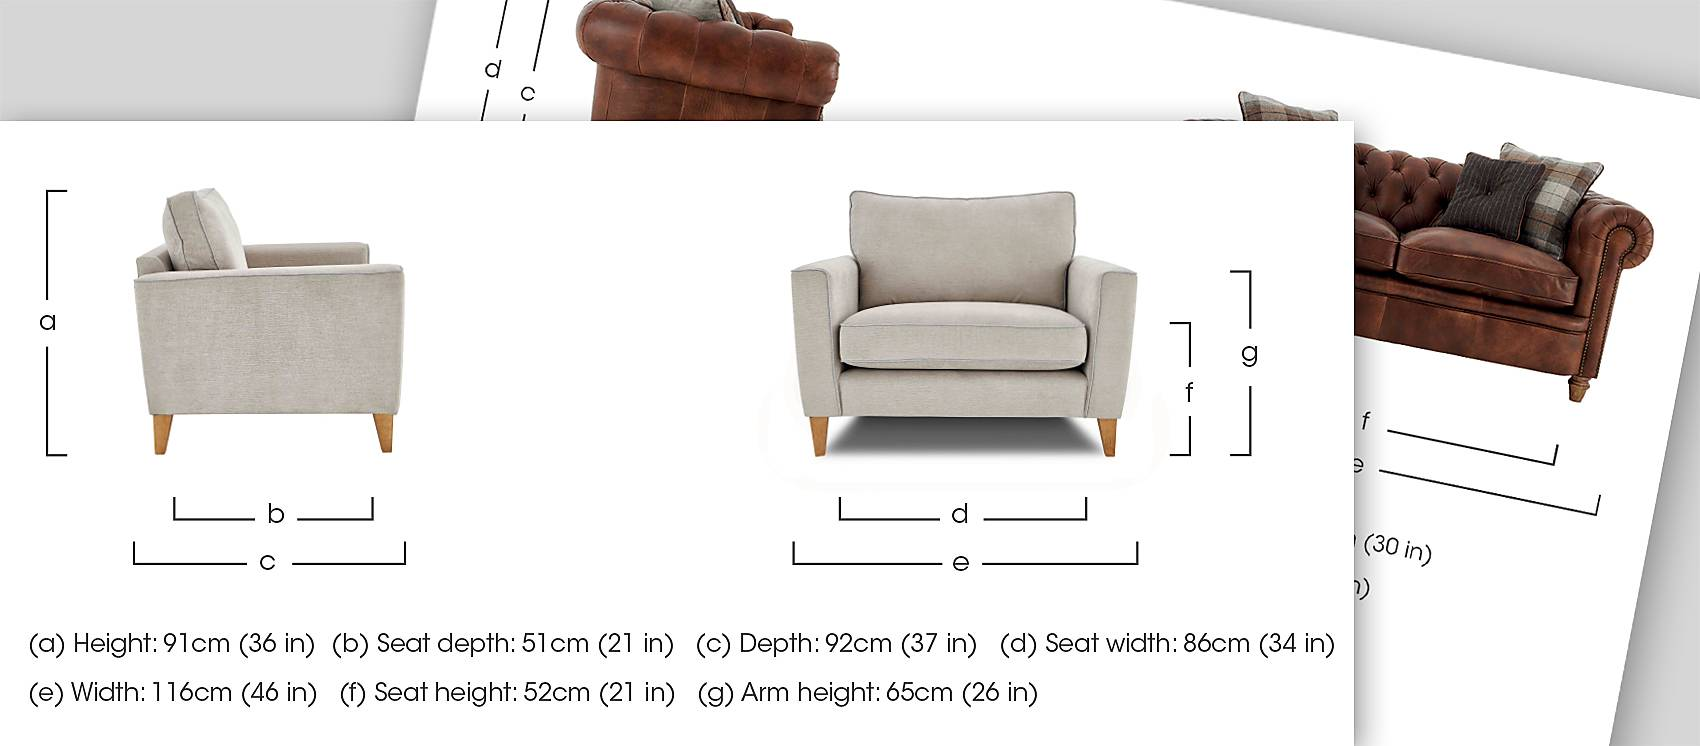 Your Furniture Measuring Guide